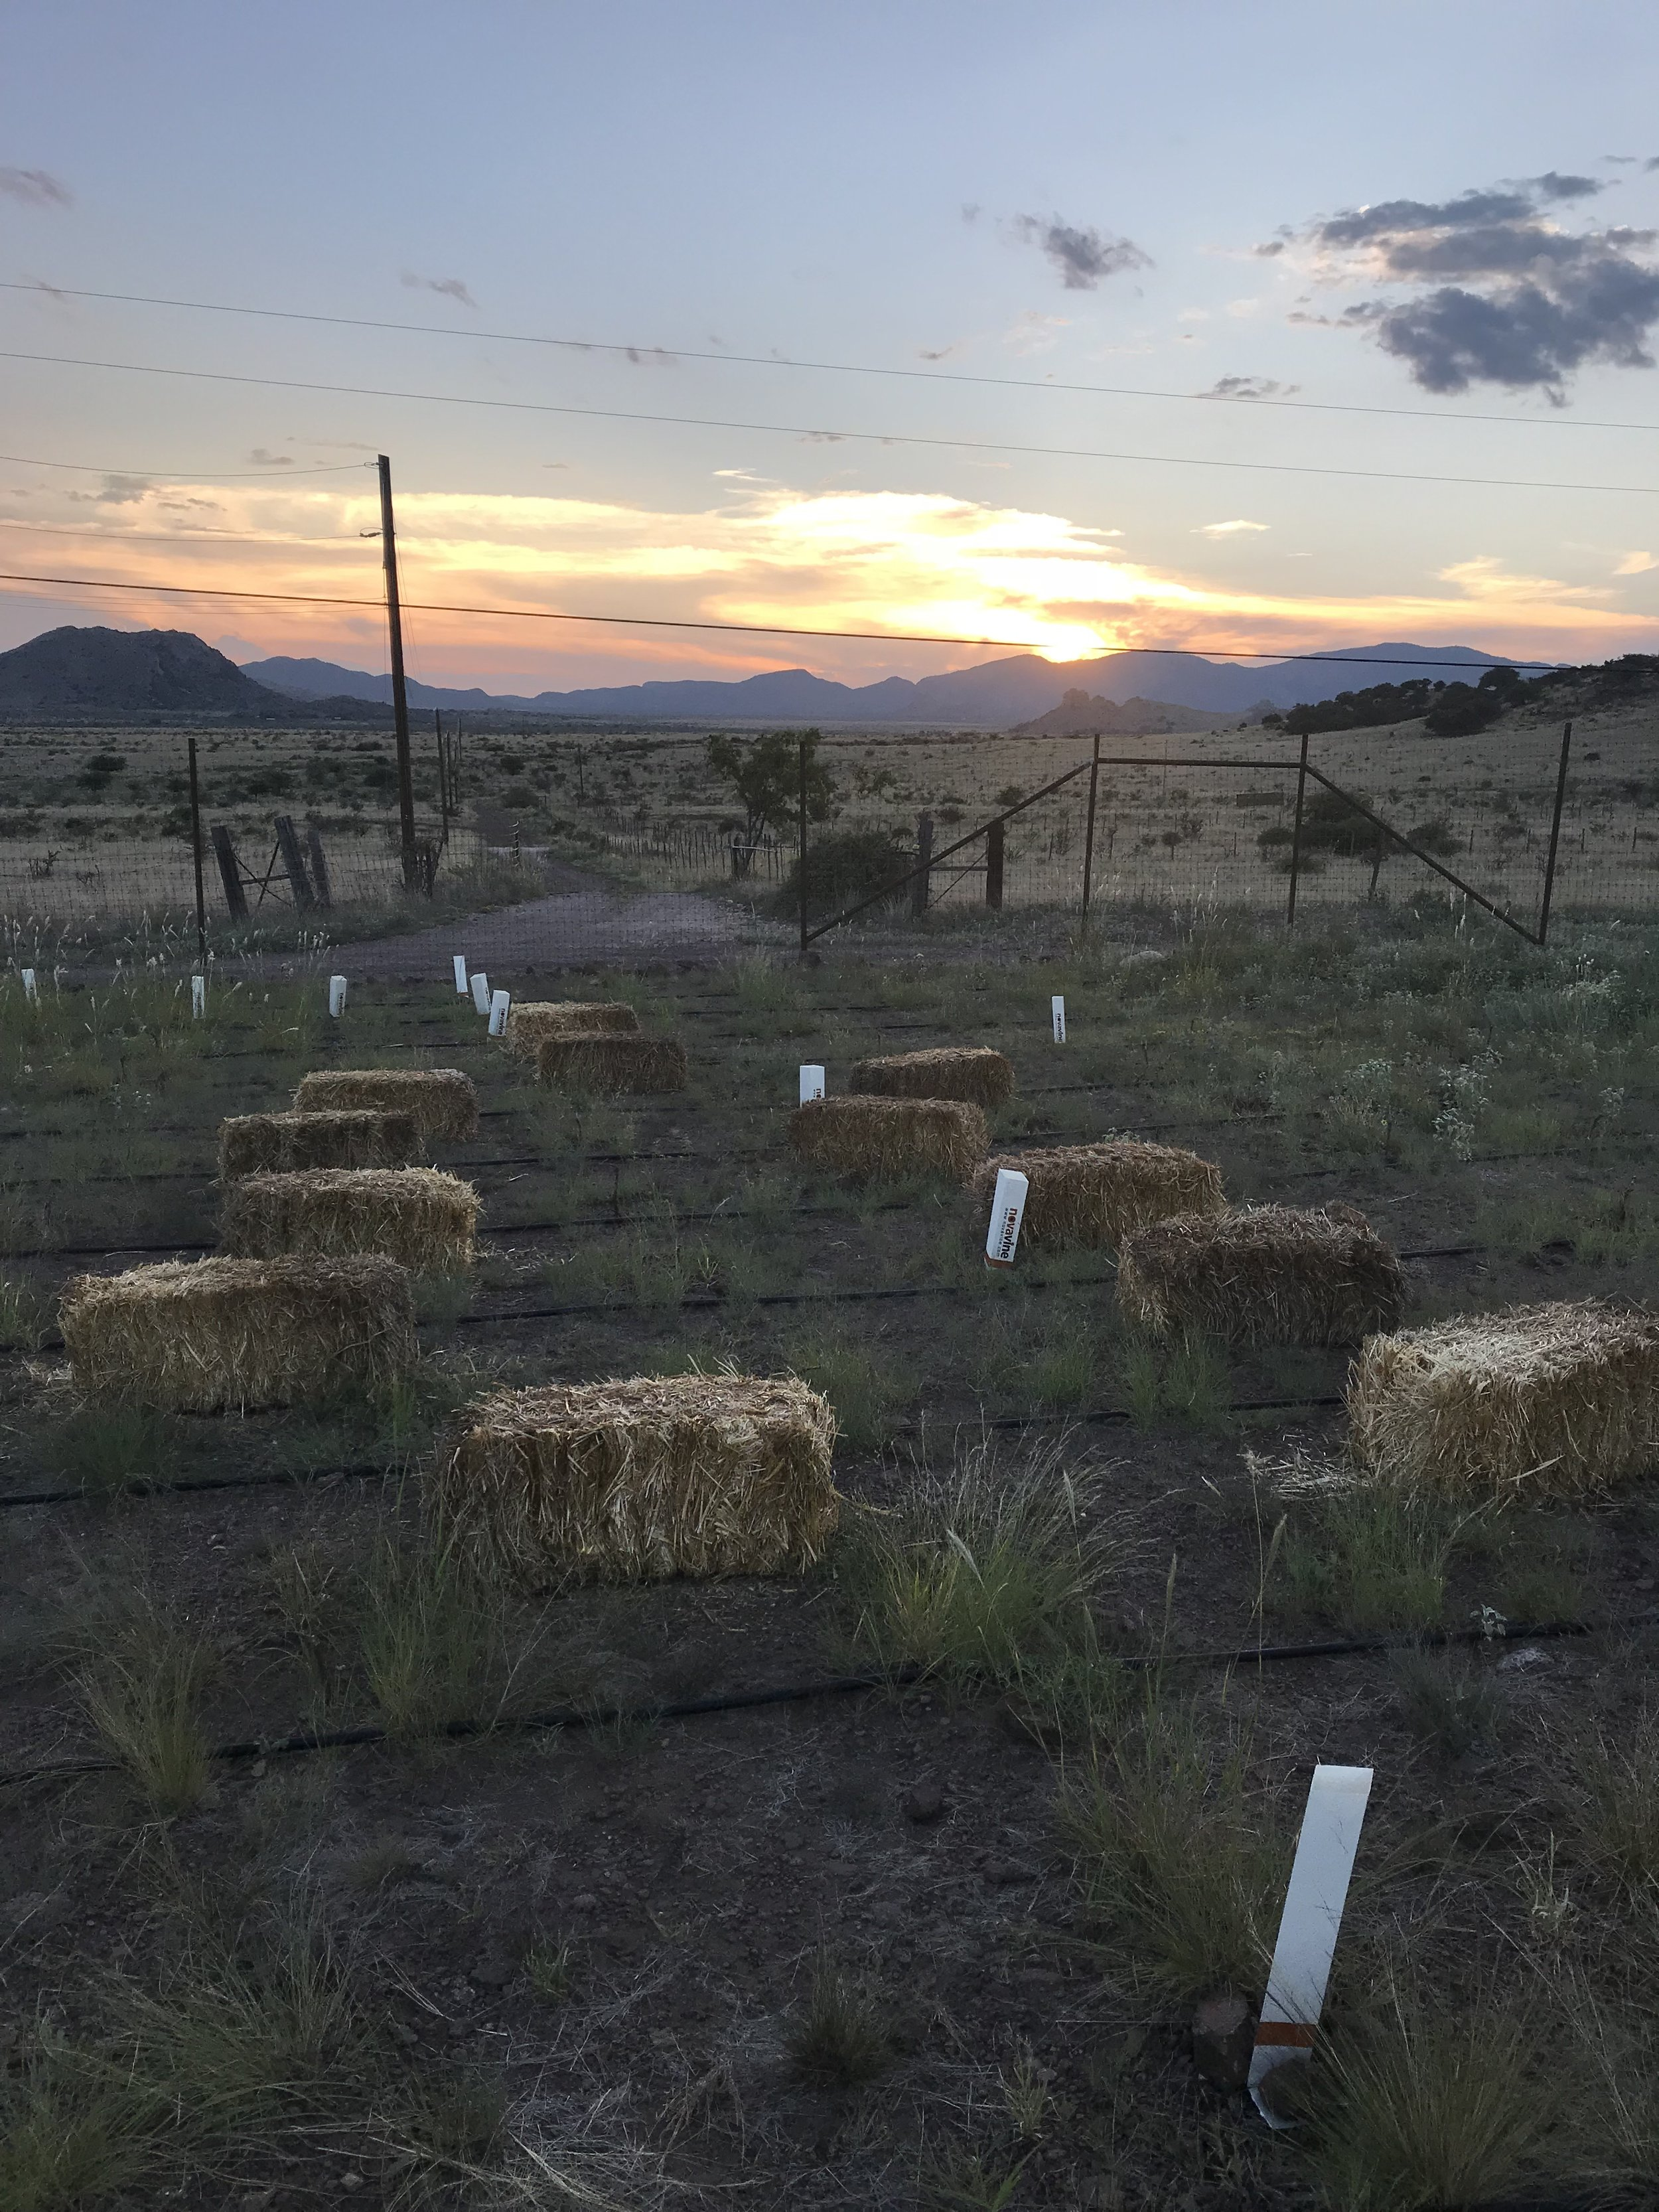 Laying out the bales before spreading out the straw. As you can see the grasses in this area of the vineyard are very sparse and you can see a lot of bare soil. You can also see from the white vine protectors that there aren't many surviving vines in this area of the vineyard.